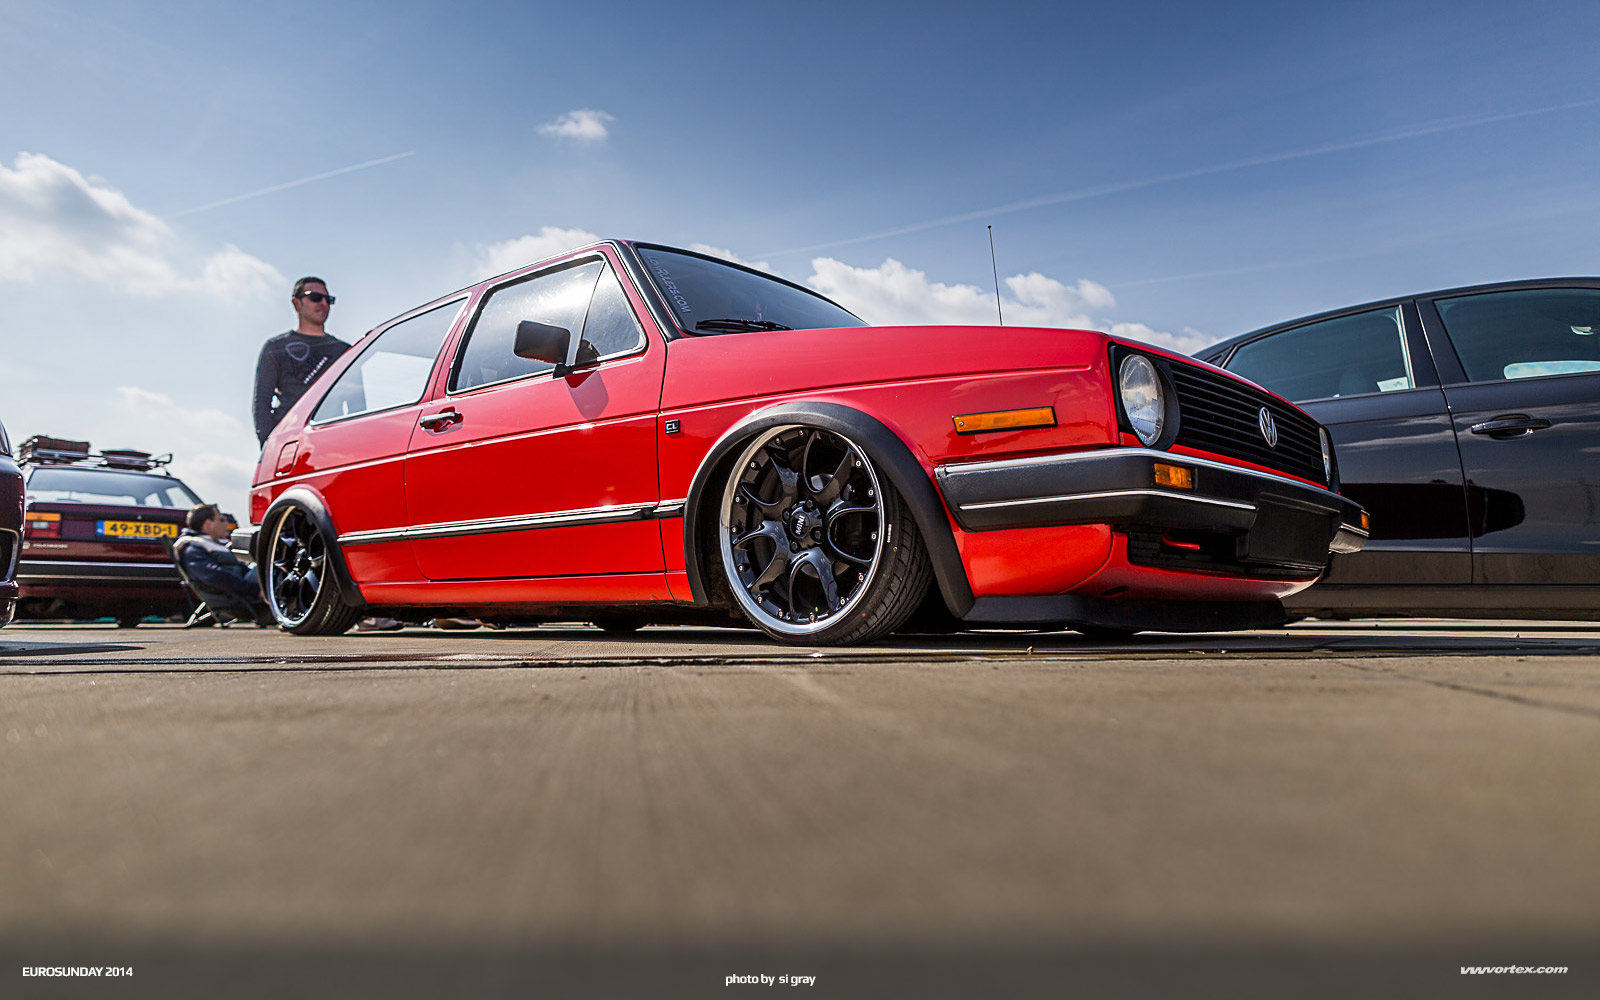 eurosunday 2014 vwvortex si gray 045 960x600